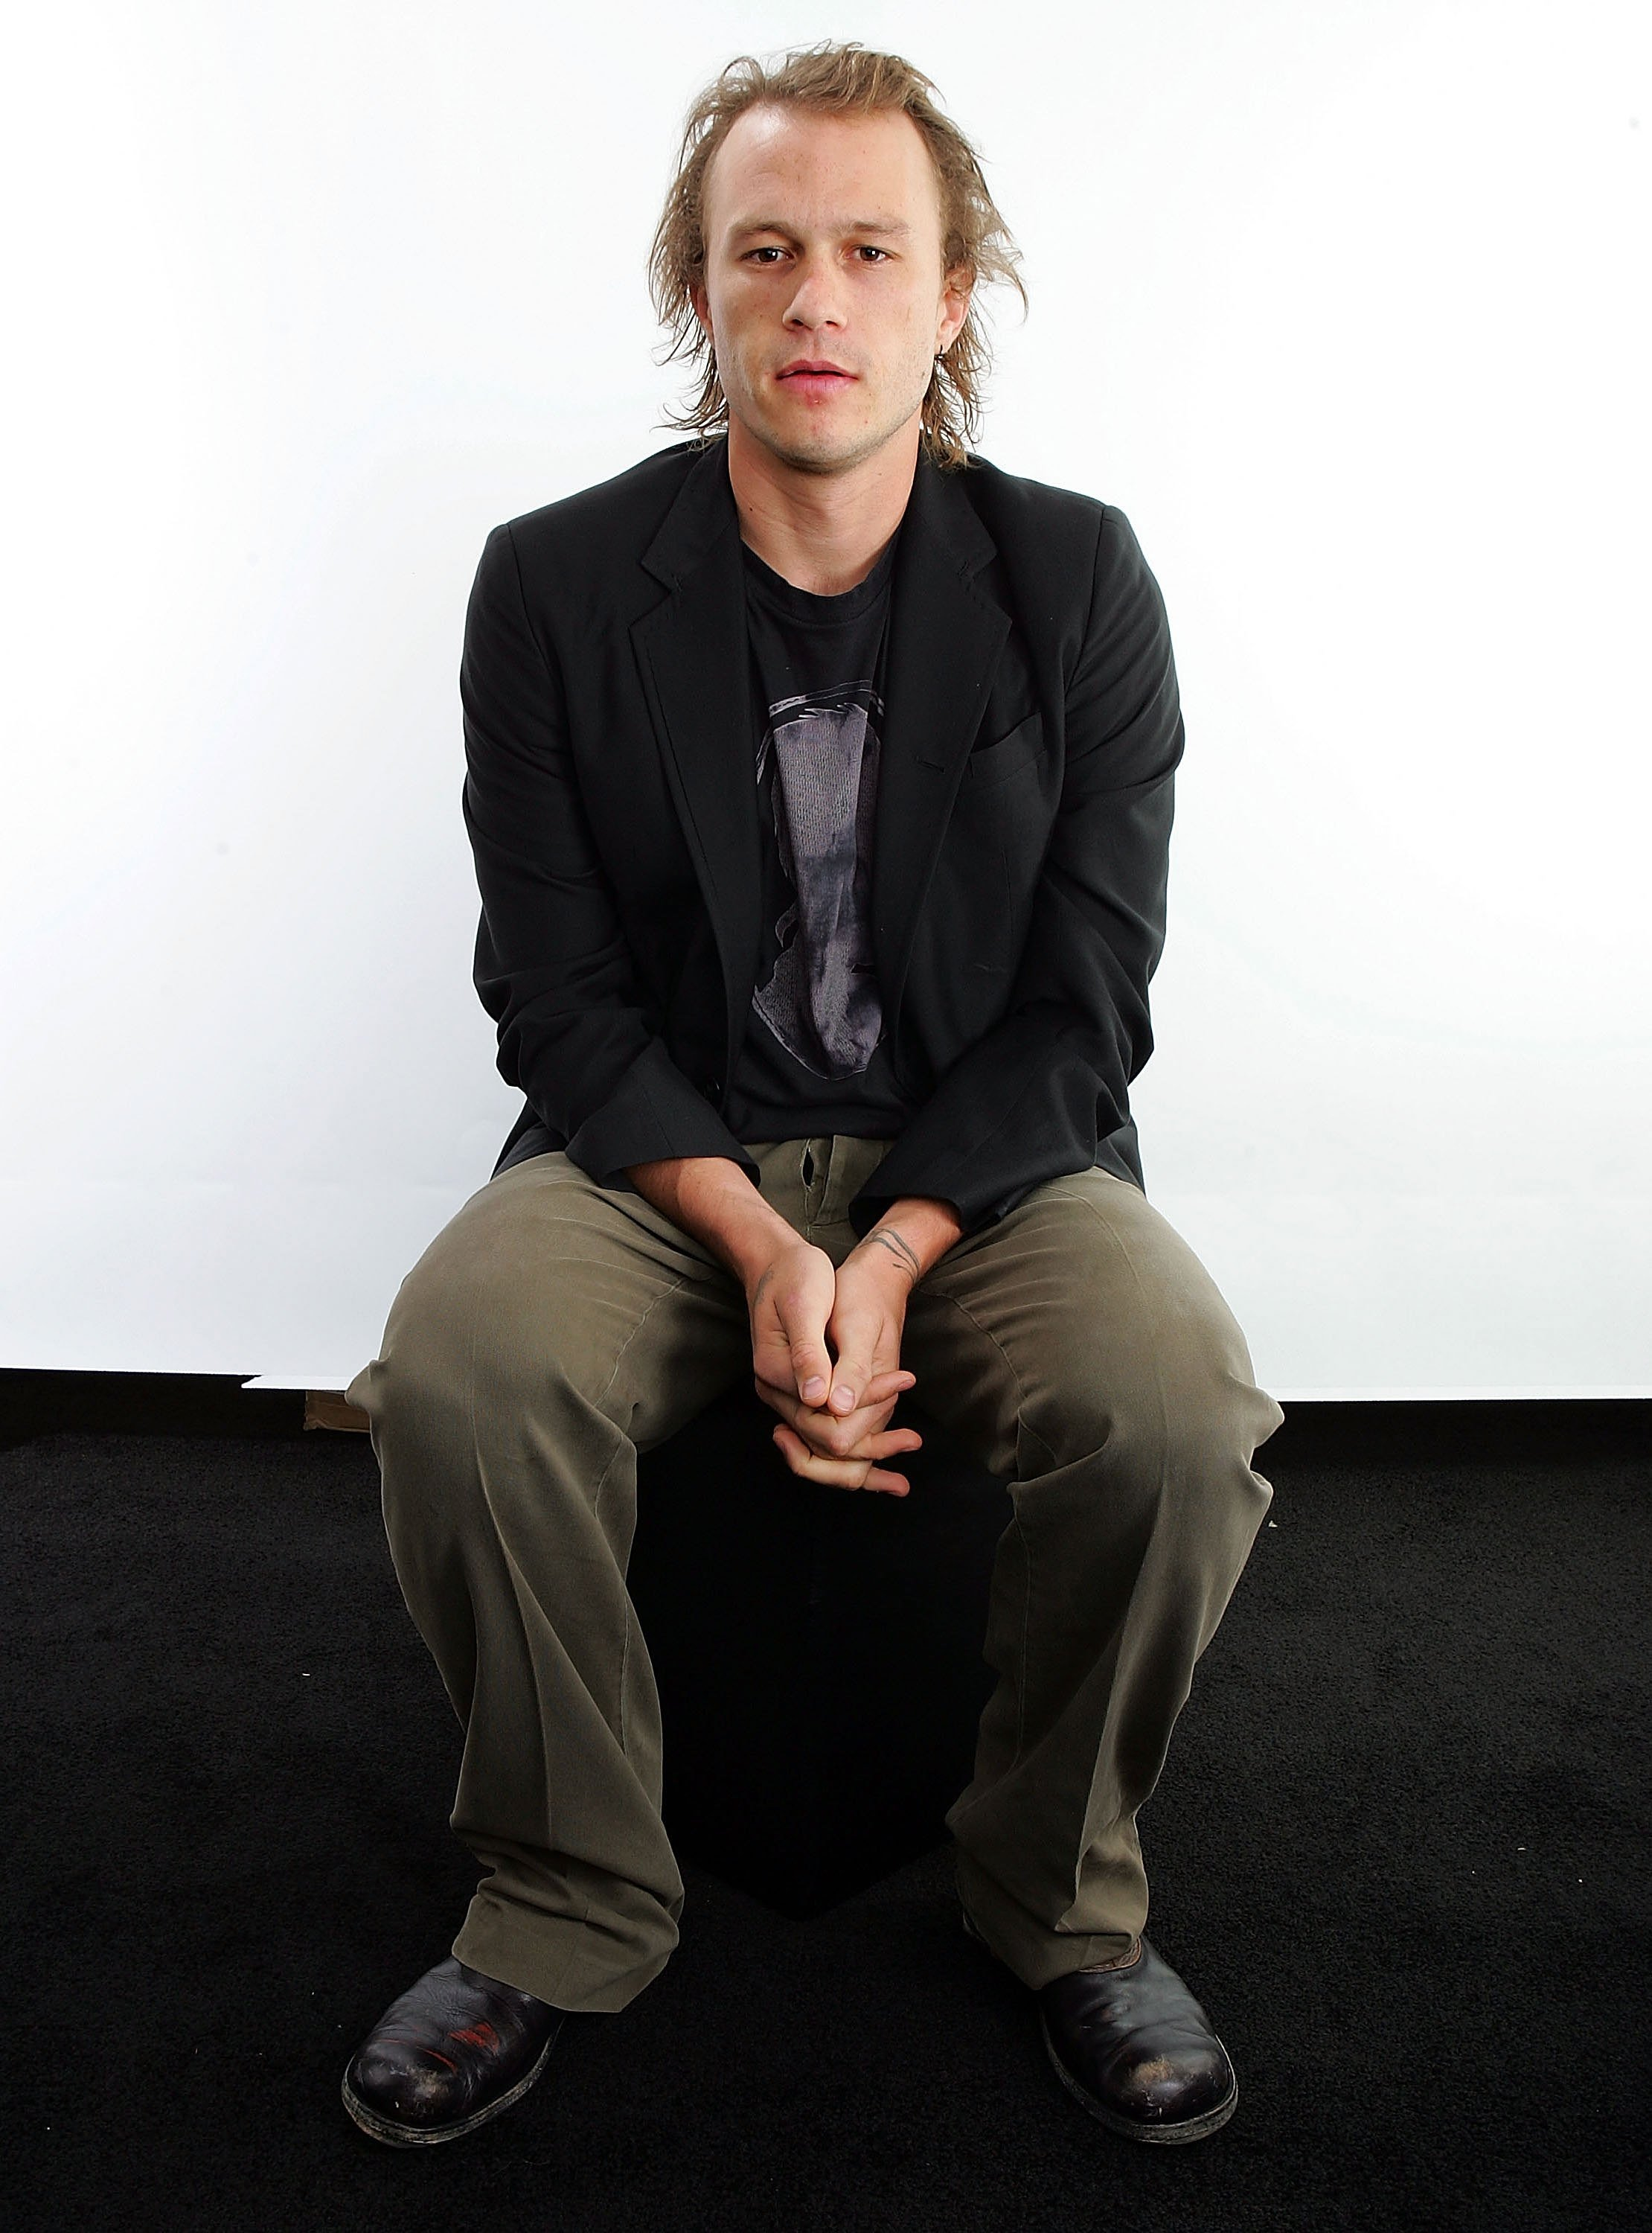 Heath Ledger posing for portraits in the Chanel Celebrity Suite at the Four Season hotel during the Toronto International Film Festival in Toronto, Canada | Photo: Getty Images